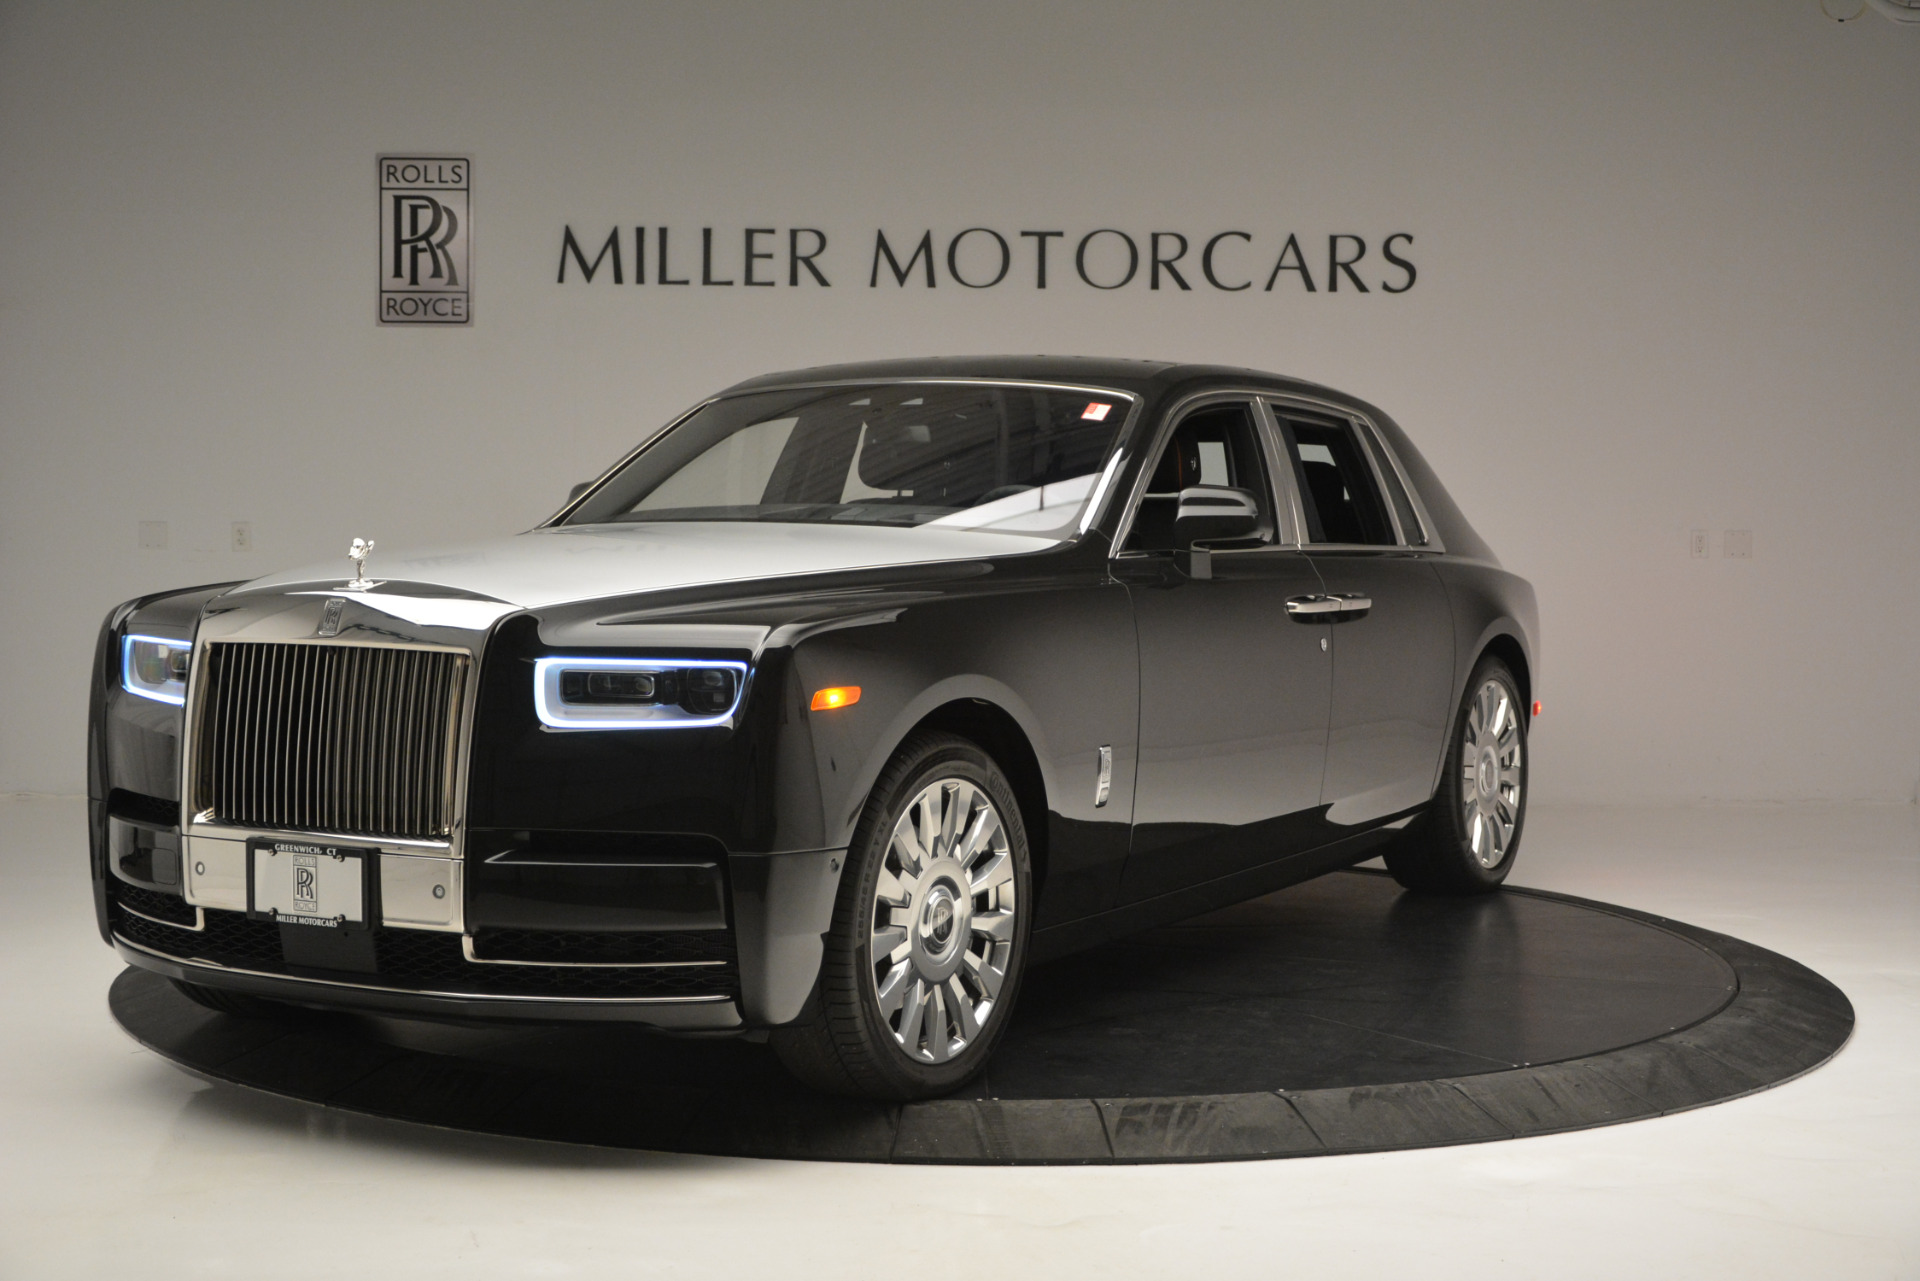 Used 2018 Rolls-Royce Phantom for sale Sold at Aston Martin of Greenwich in Greenwich CT 06830 1